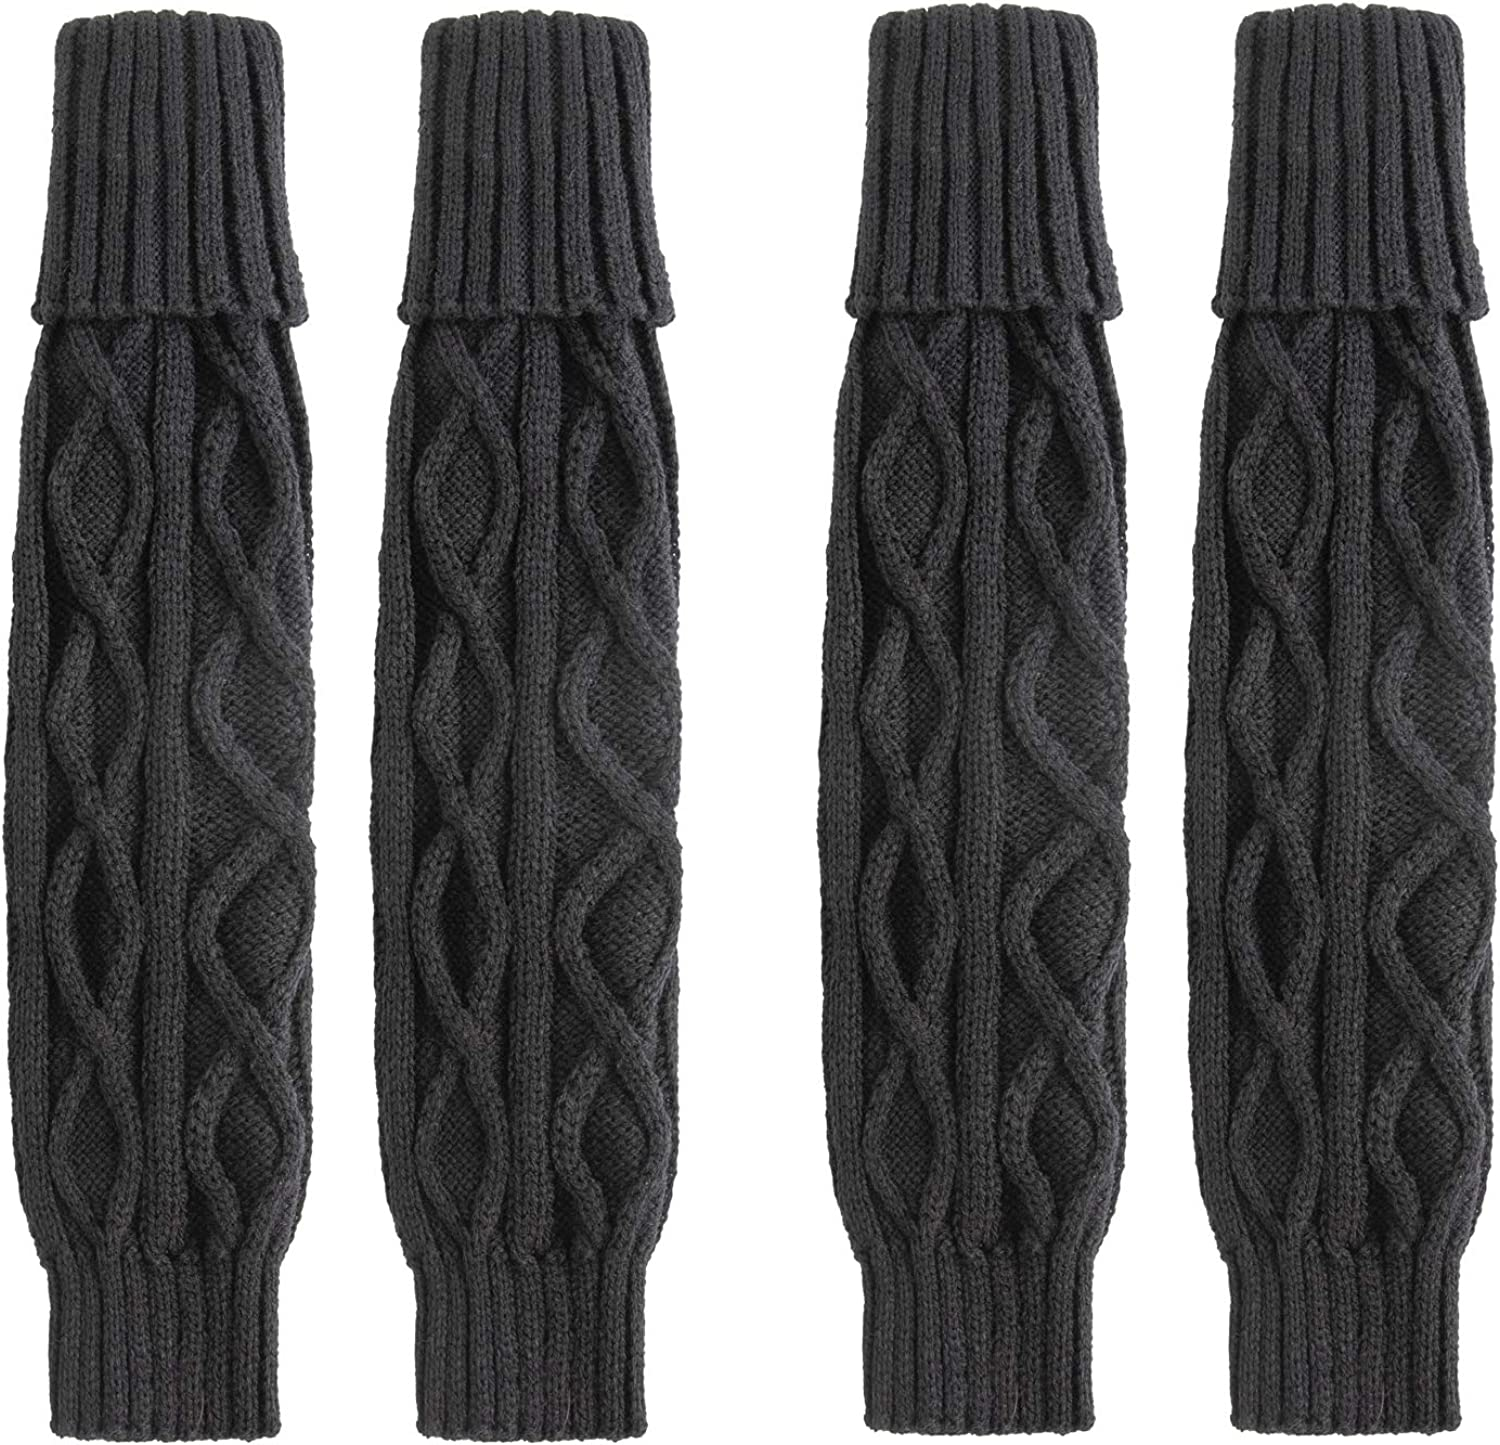 Leg Warmers For Women, 2 Pairs Cable-Knit Warm & Comfortable Acrylic Long Socks